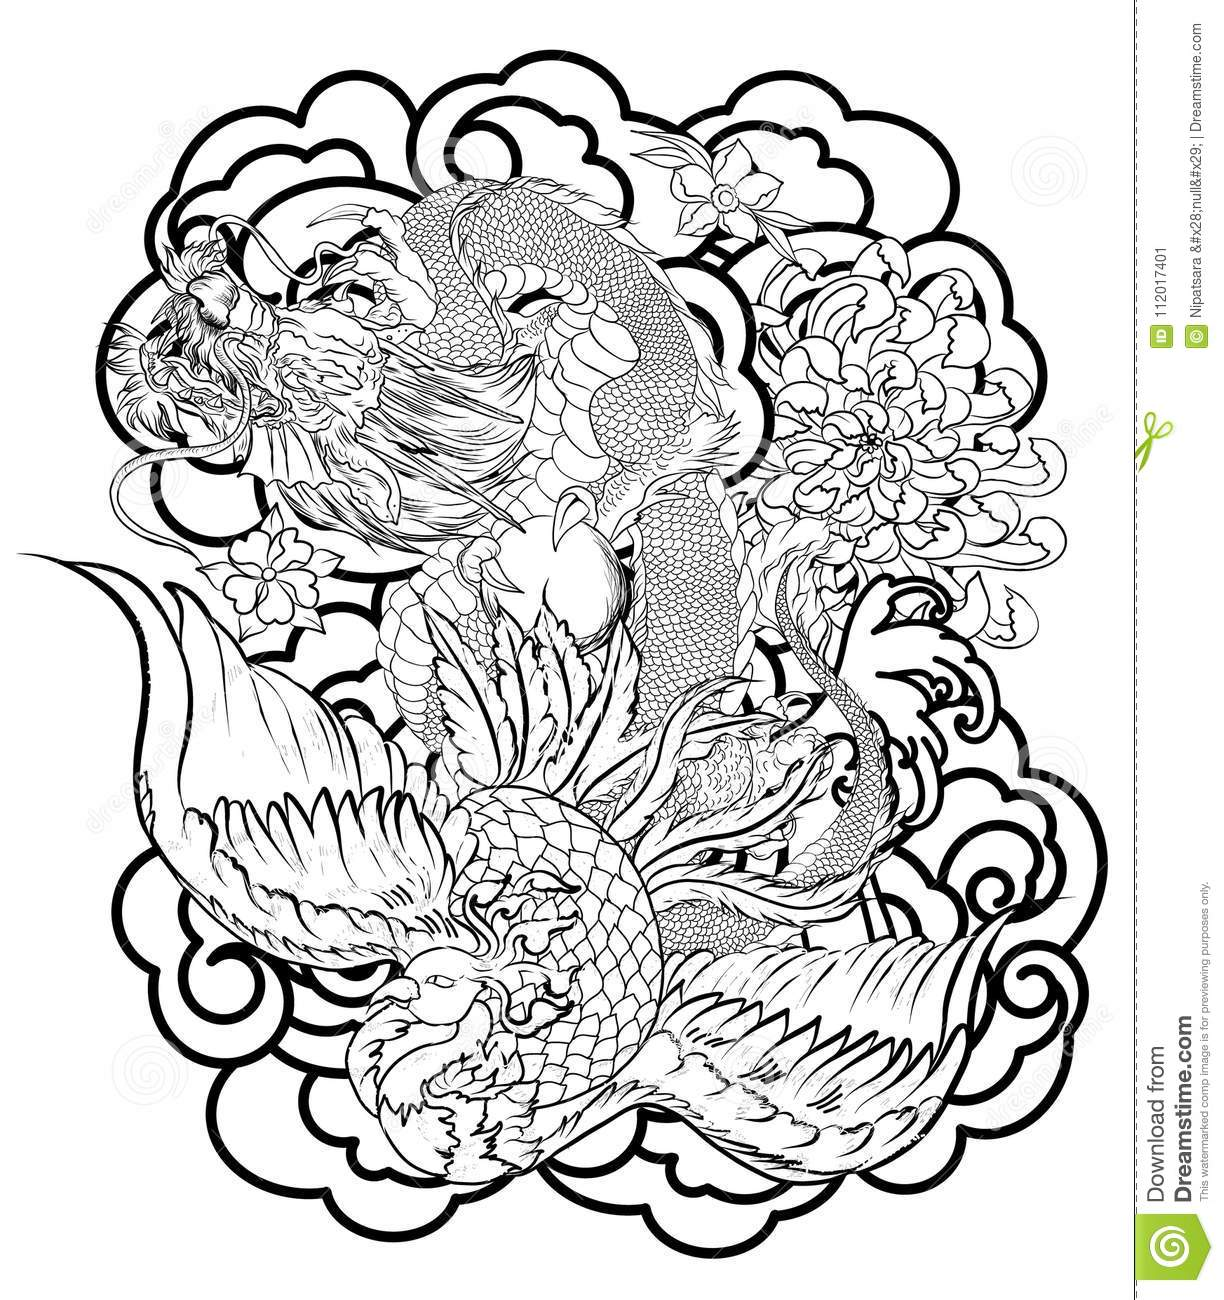 Chinese Dragon And Peacock Tattoo Designpeach With Peony And Plum